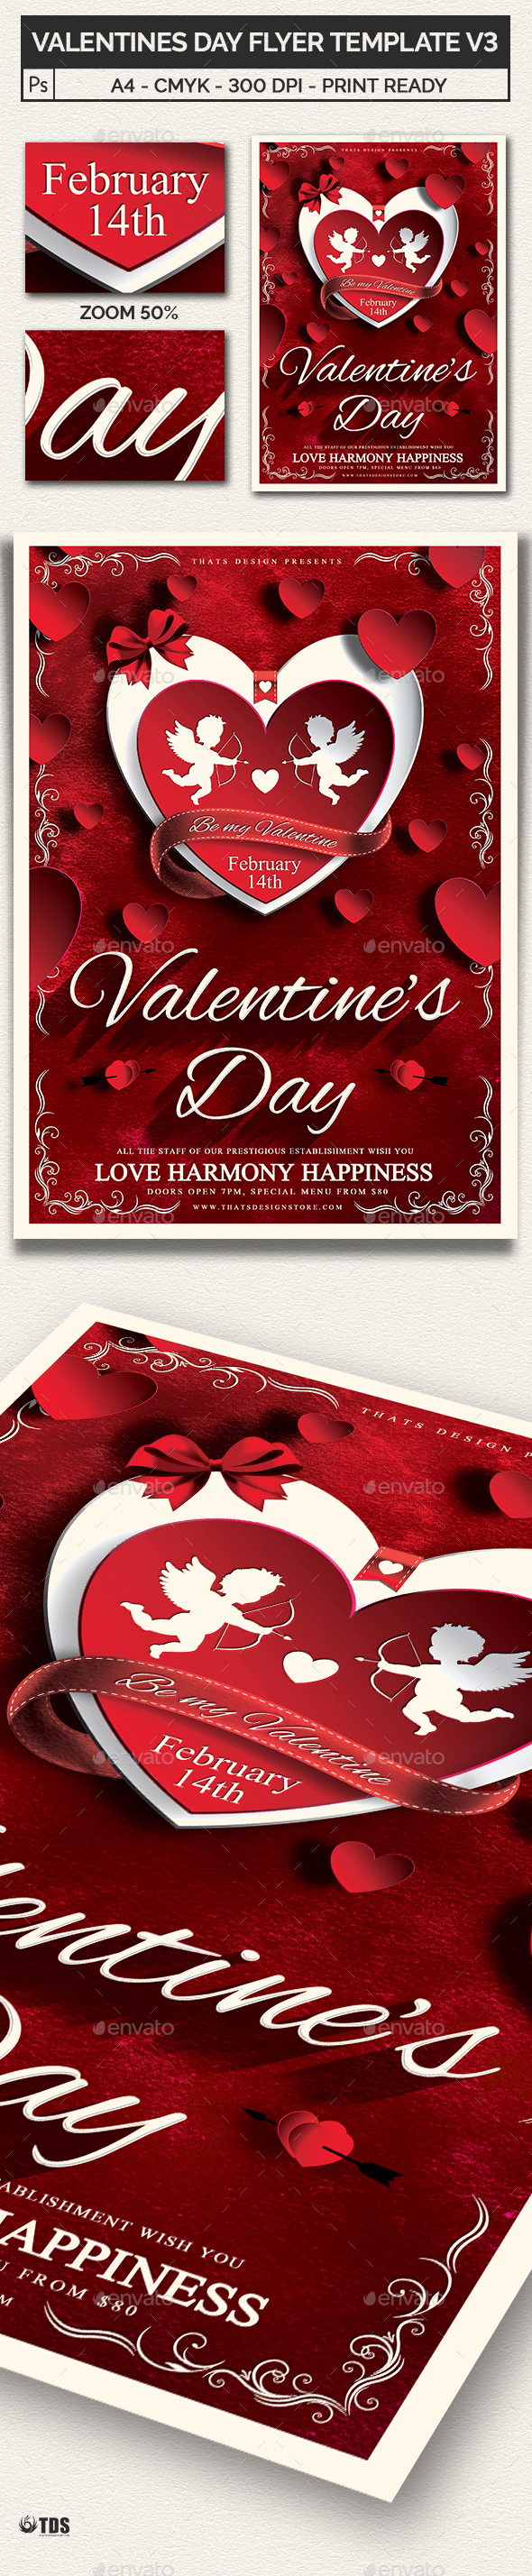 Valentines Day Flyer Template V3 - Holidays Events